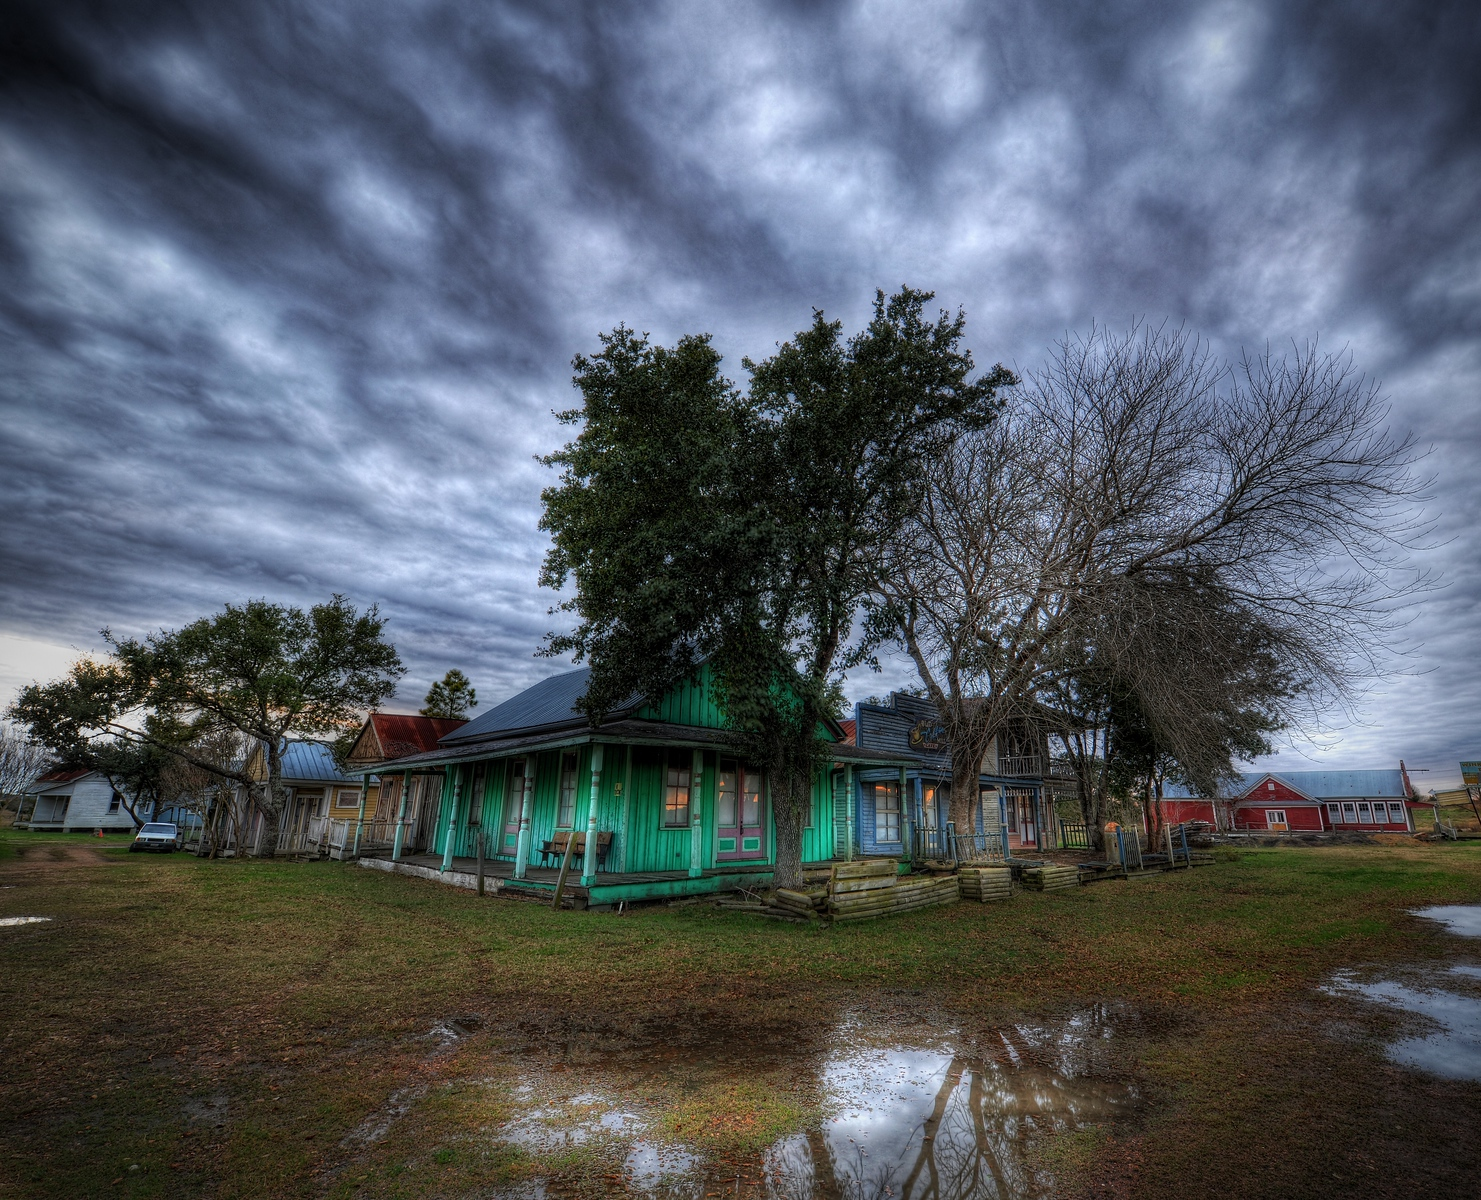 """The Place in Texas Where They Found the 17 Bodies Now this is a proper Texas ghost town! It was always one of those things that fascinated me as a child.  Pretty much anything with the name """"ghost"""" in it was cool back then, including my """"Choose Your Own Adventure"""" books.  I remember there was one called """"Deadwood"""" or something like that, which always had a creepy ghost town feel to it.Anyway, this is a strange abandoned town outside of Brenham, Texas (Home of Blue Bell Ice Cream!).  And no, 17 Bodies were not found here... just being a bit dramatic.  Or maybe there WERE 17 bodies here but the authorities are just covering it up.  It's all true.  I heard Alex Jones say it.Last, I have updated my Nikon 14-24 Review and my Nikon 24-70 Review with new photos and the like.  I know that only about half of our audience is photographers, but some people are looking to get into it more seriously, so maybe those will be helpful to you!- Trey RatcliffClick here to read the rest of this post at the Stuck in Customs blog."""